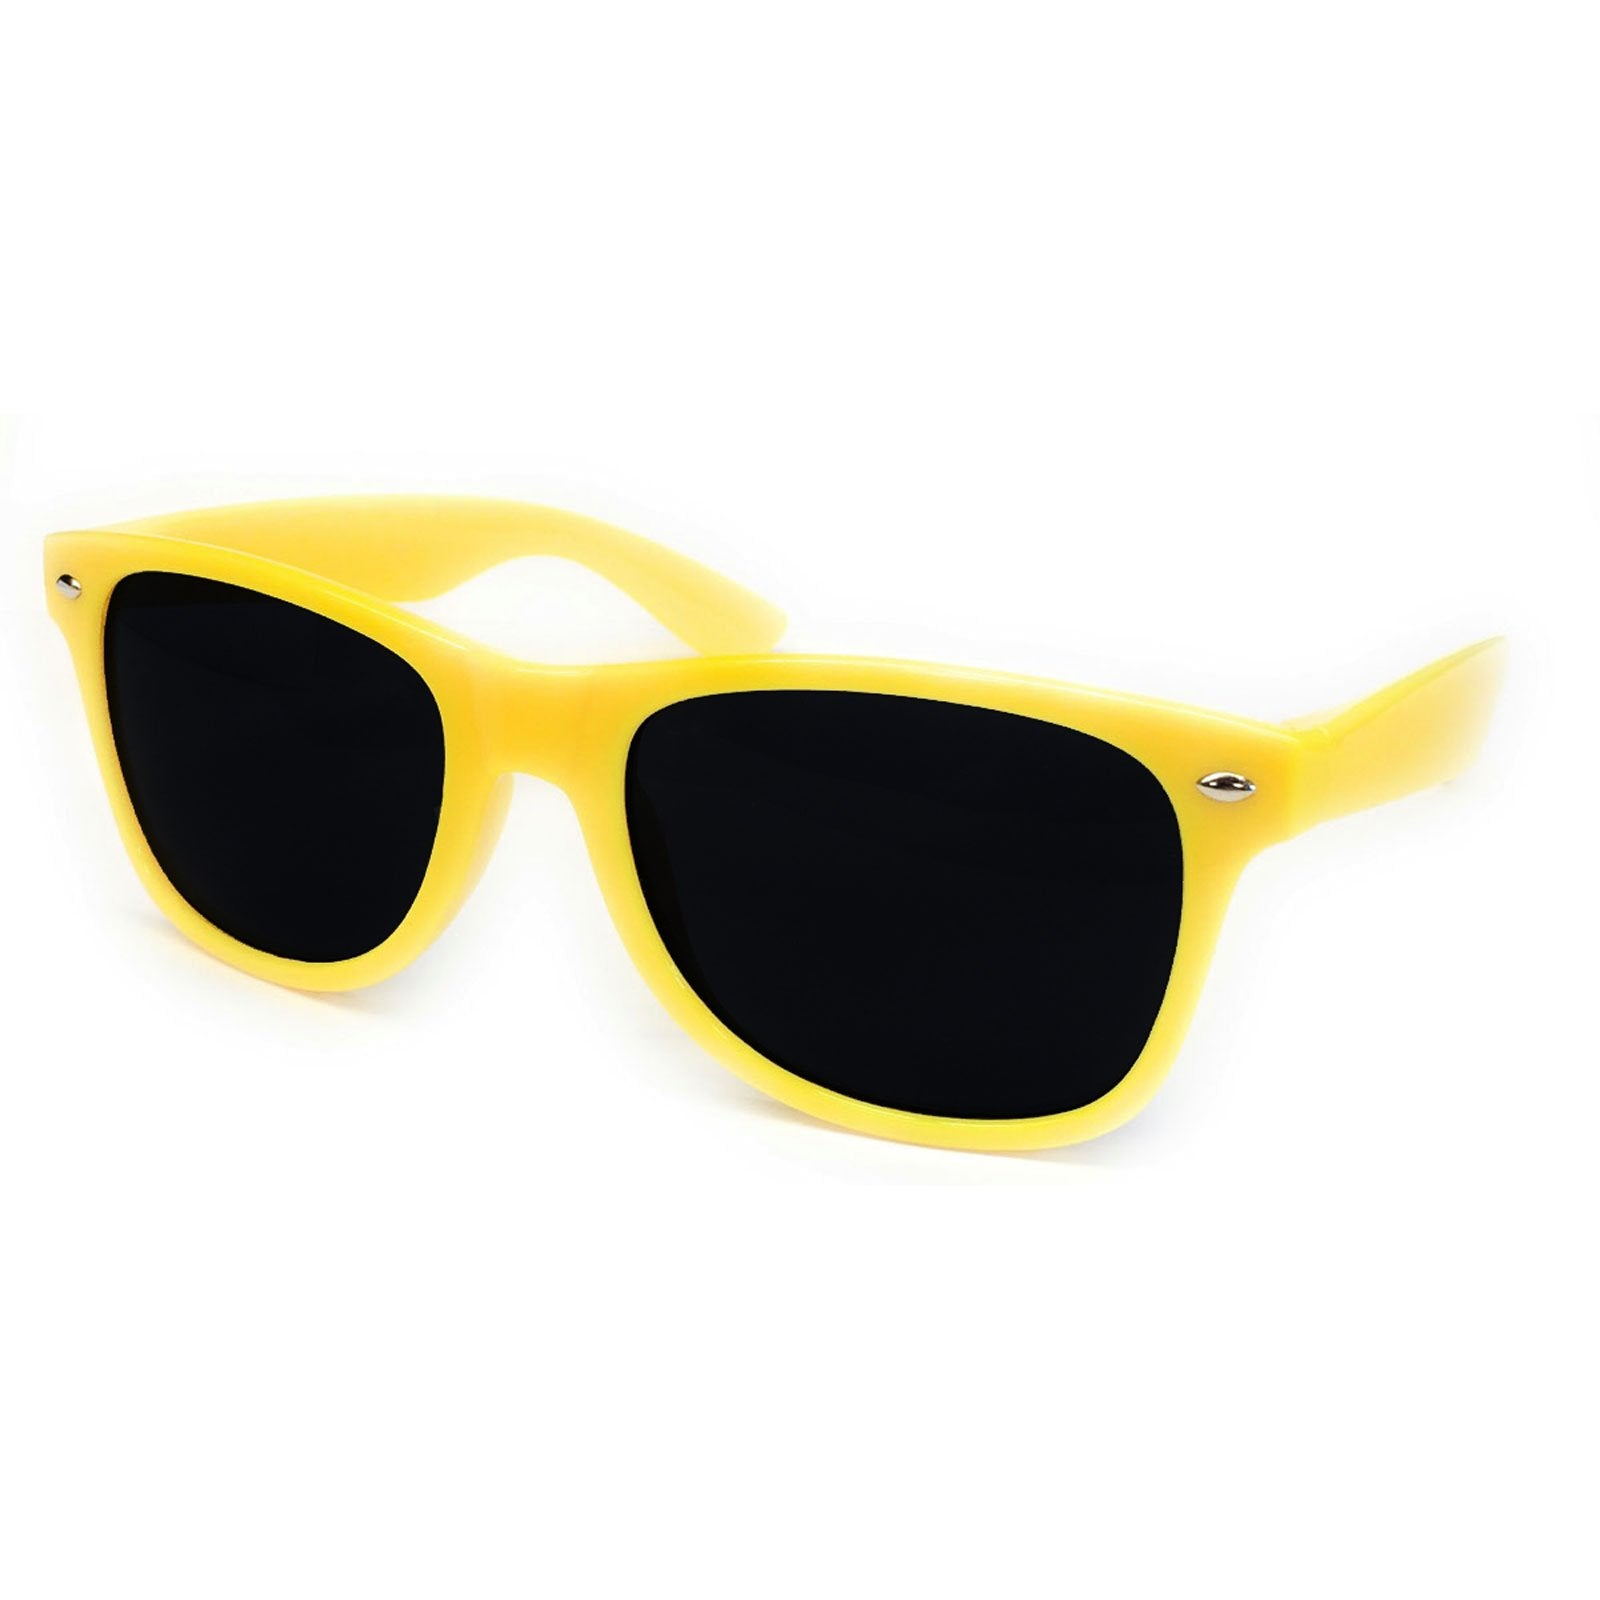 Wholesale Classic Sunglasses - Yellow Frame, Black Lens